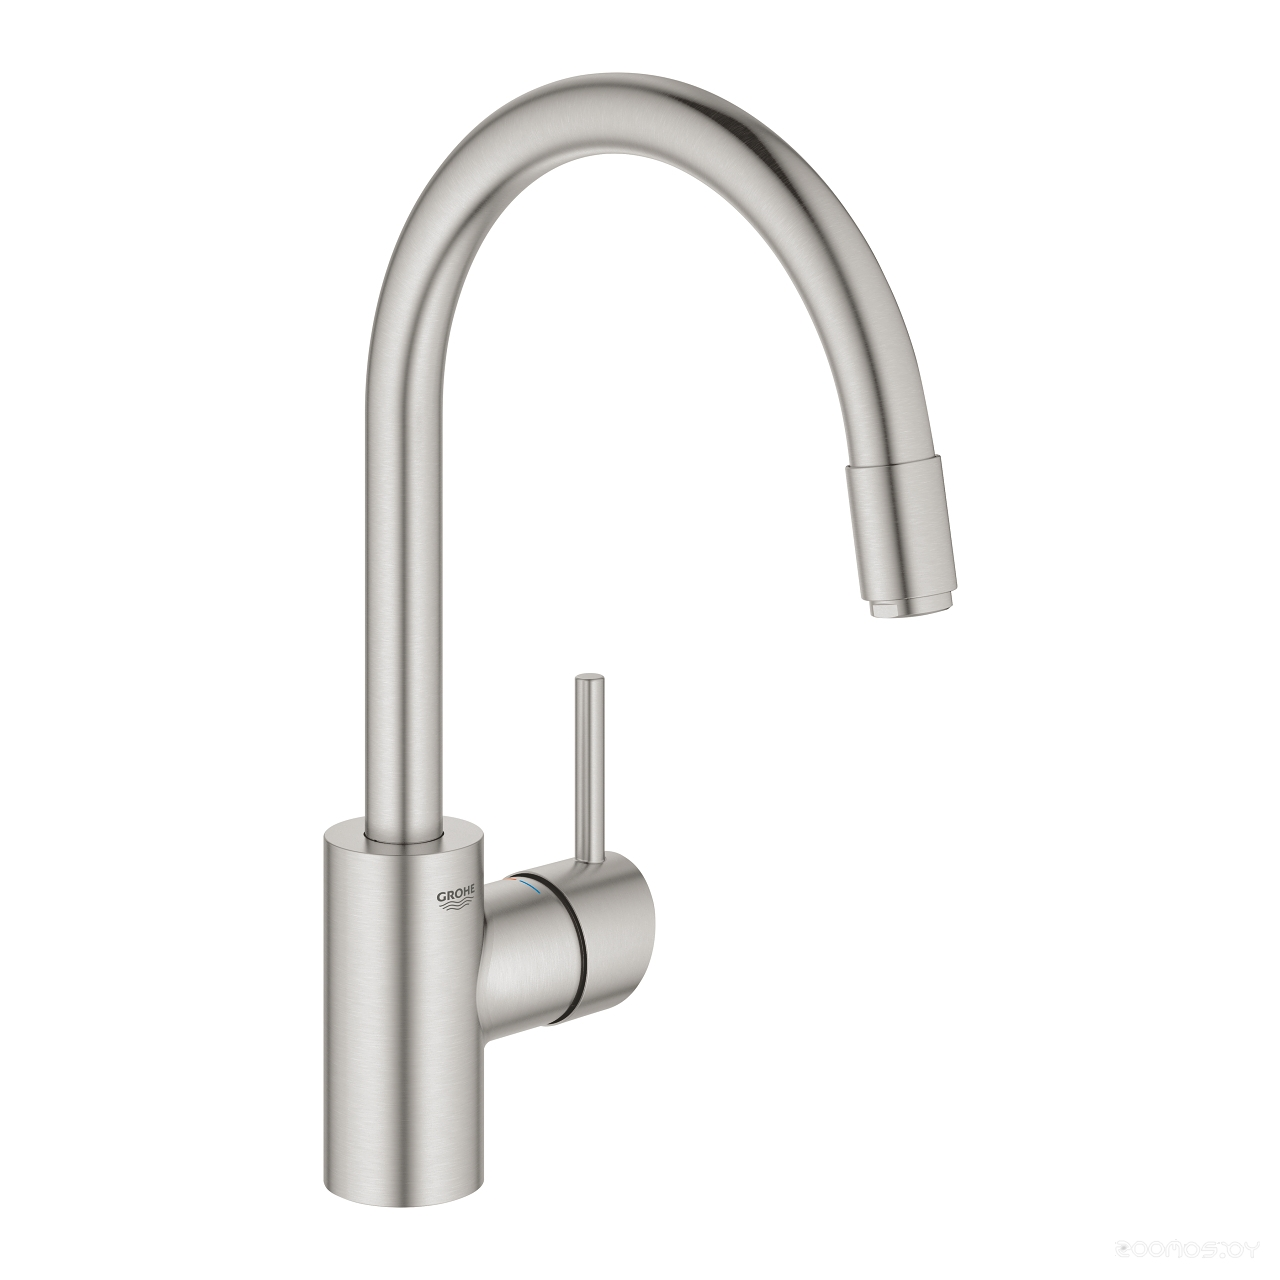 Grohe Concetto DN 15